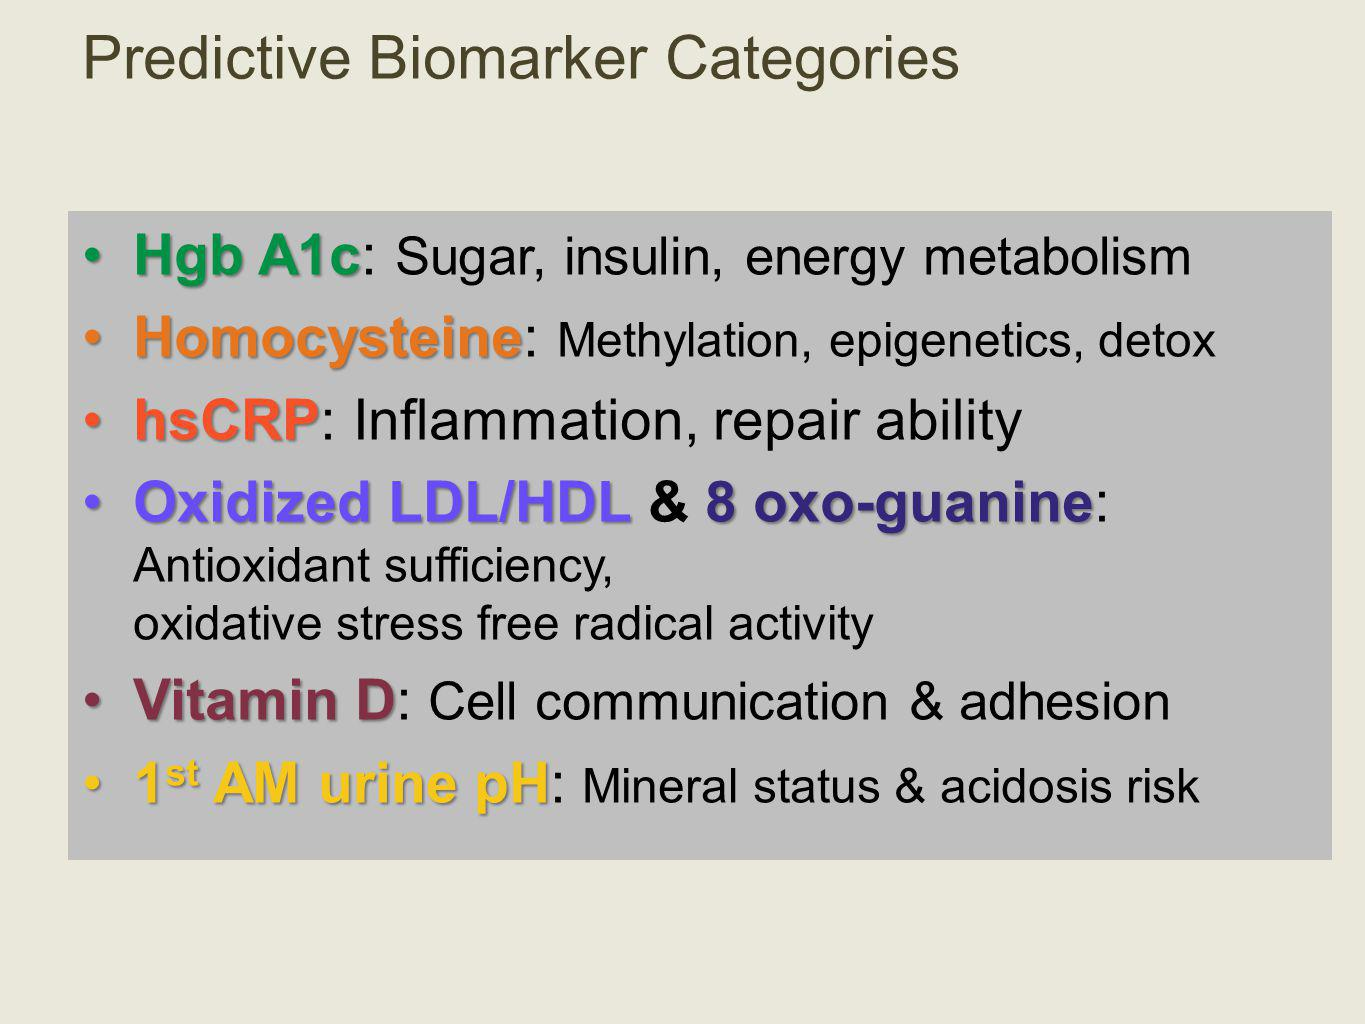 Predictive Biomarker Categories Hgb A1cHgb A1c: Sugar, insulin, energy metabolism HomocysteineHomocysteine: Methylation, epigenetics, detox hsCRPhsCRP: Inflammation, repair ability Oxidized LDL/HDL 8 oxo-guanineOxidized LDL/HDL & 8 oxo-guanine: Antioxidant sufficiency, oxidative stress free radical activity Vitamin DVitamin D: Cell communication & adhesion 1 st AM urine pH1 st AM urine pH: Mineral status & acidosis risk